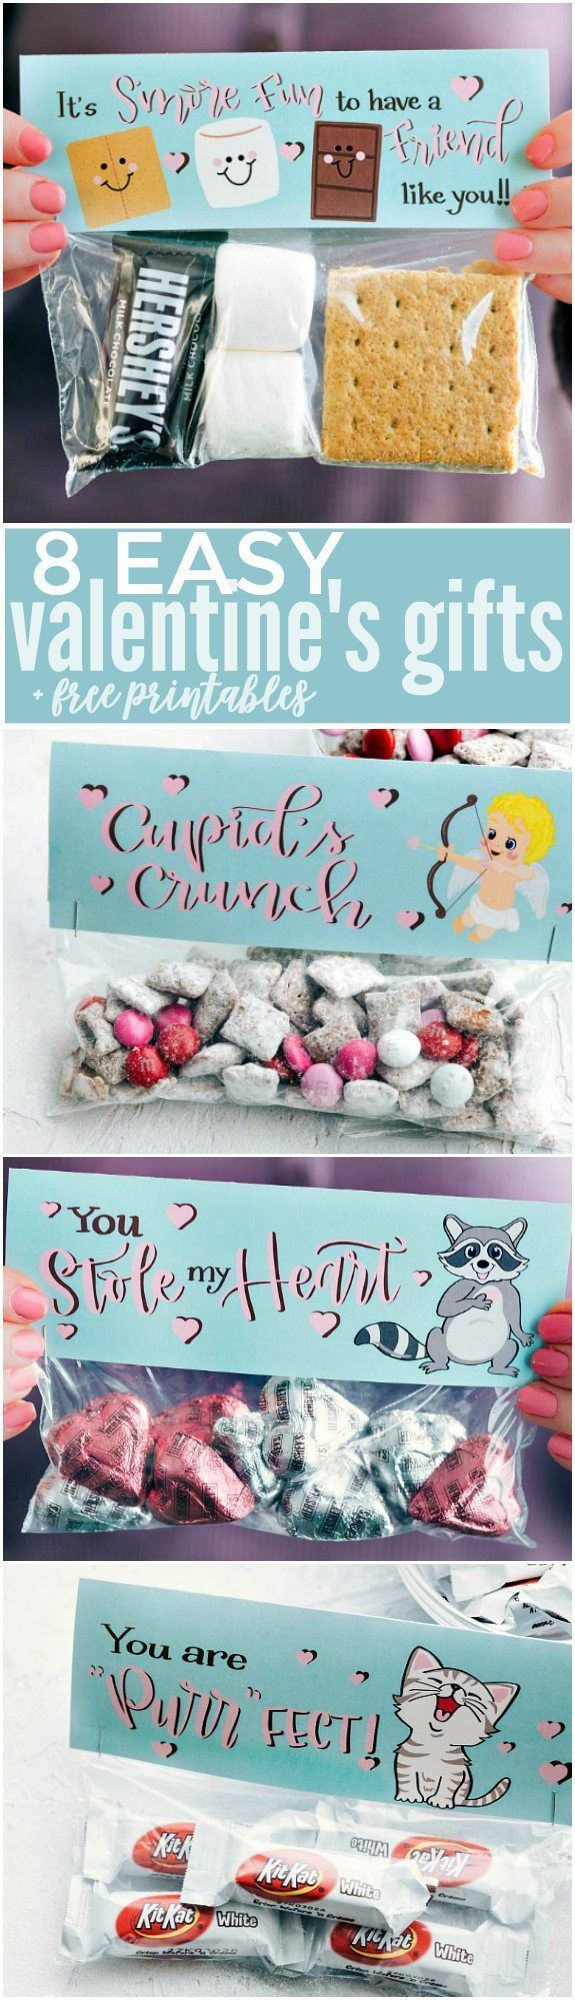 0d31b70e93c9ed413a8325e44451ec18 - The CUTEST Valentine's Day Gifts -- so easy to make and FREE PRINTABLE bag t...